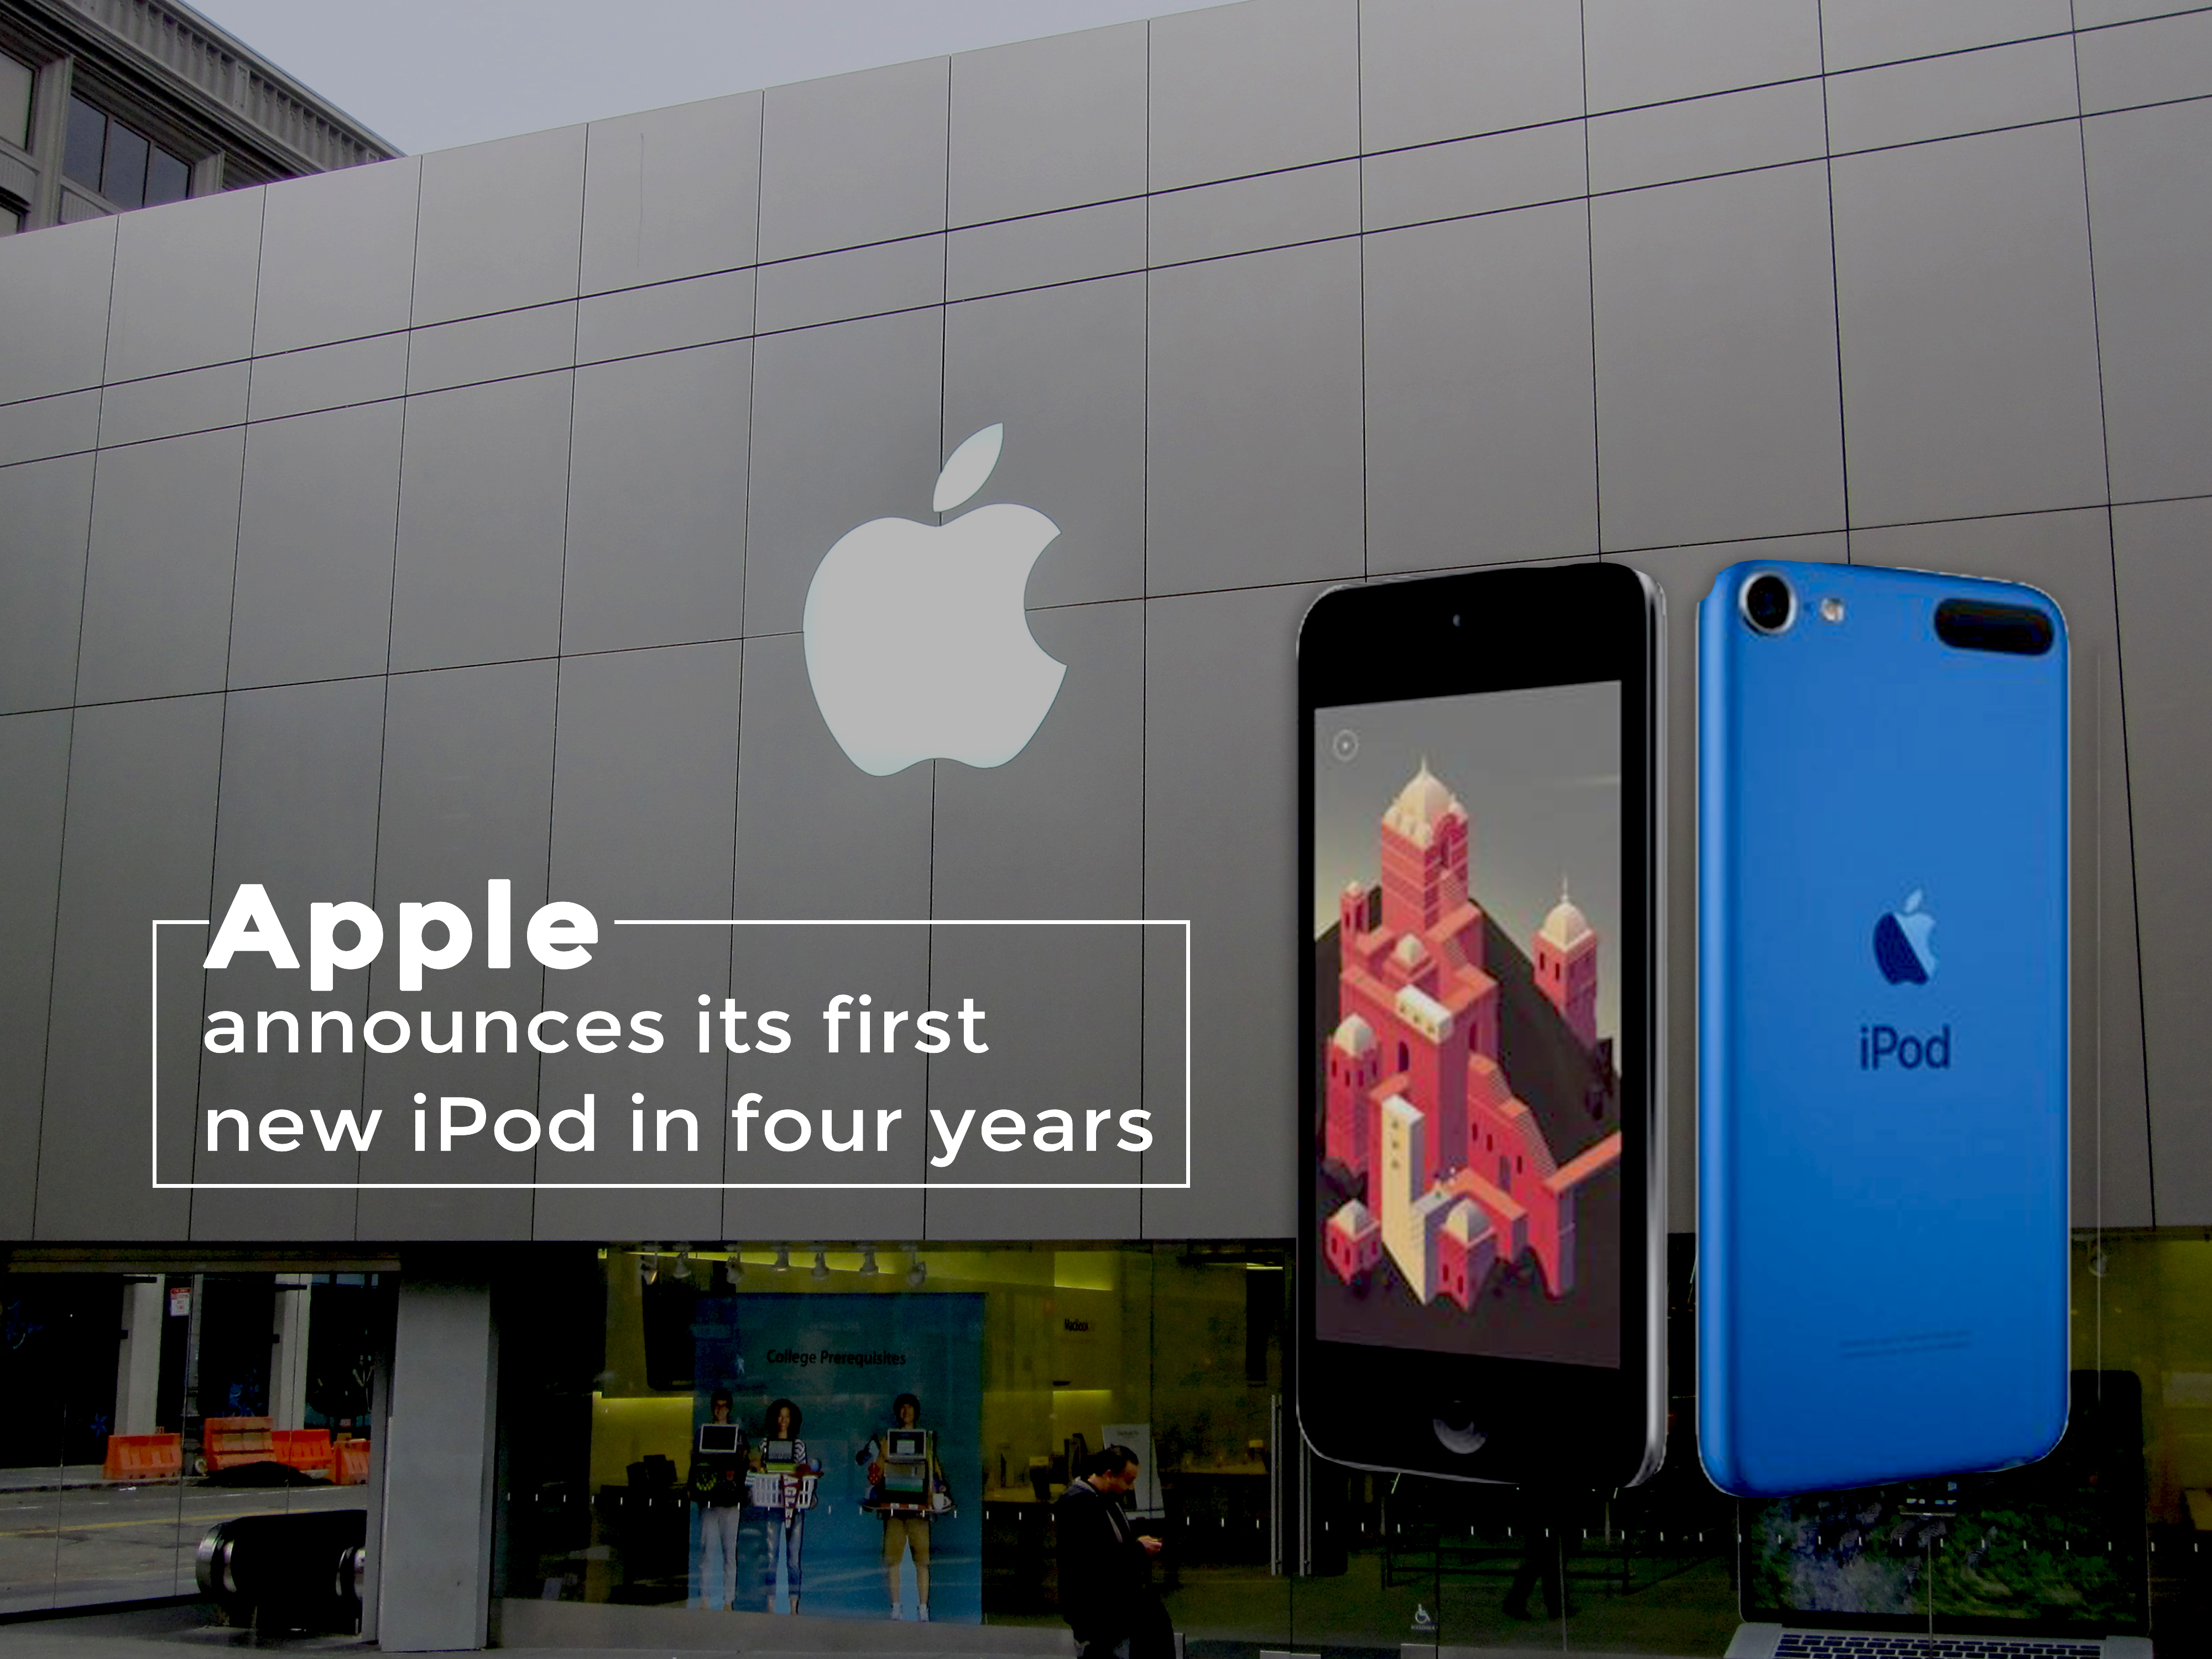 Apple Announced its First New iPod in Last Four Years